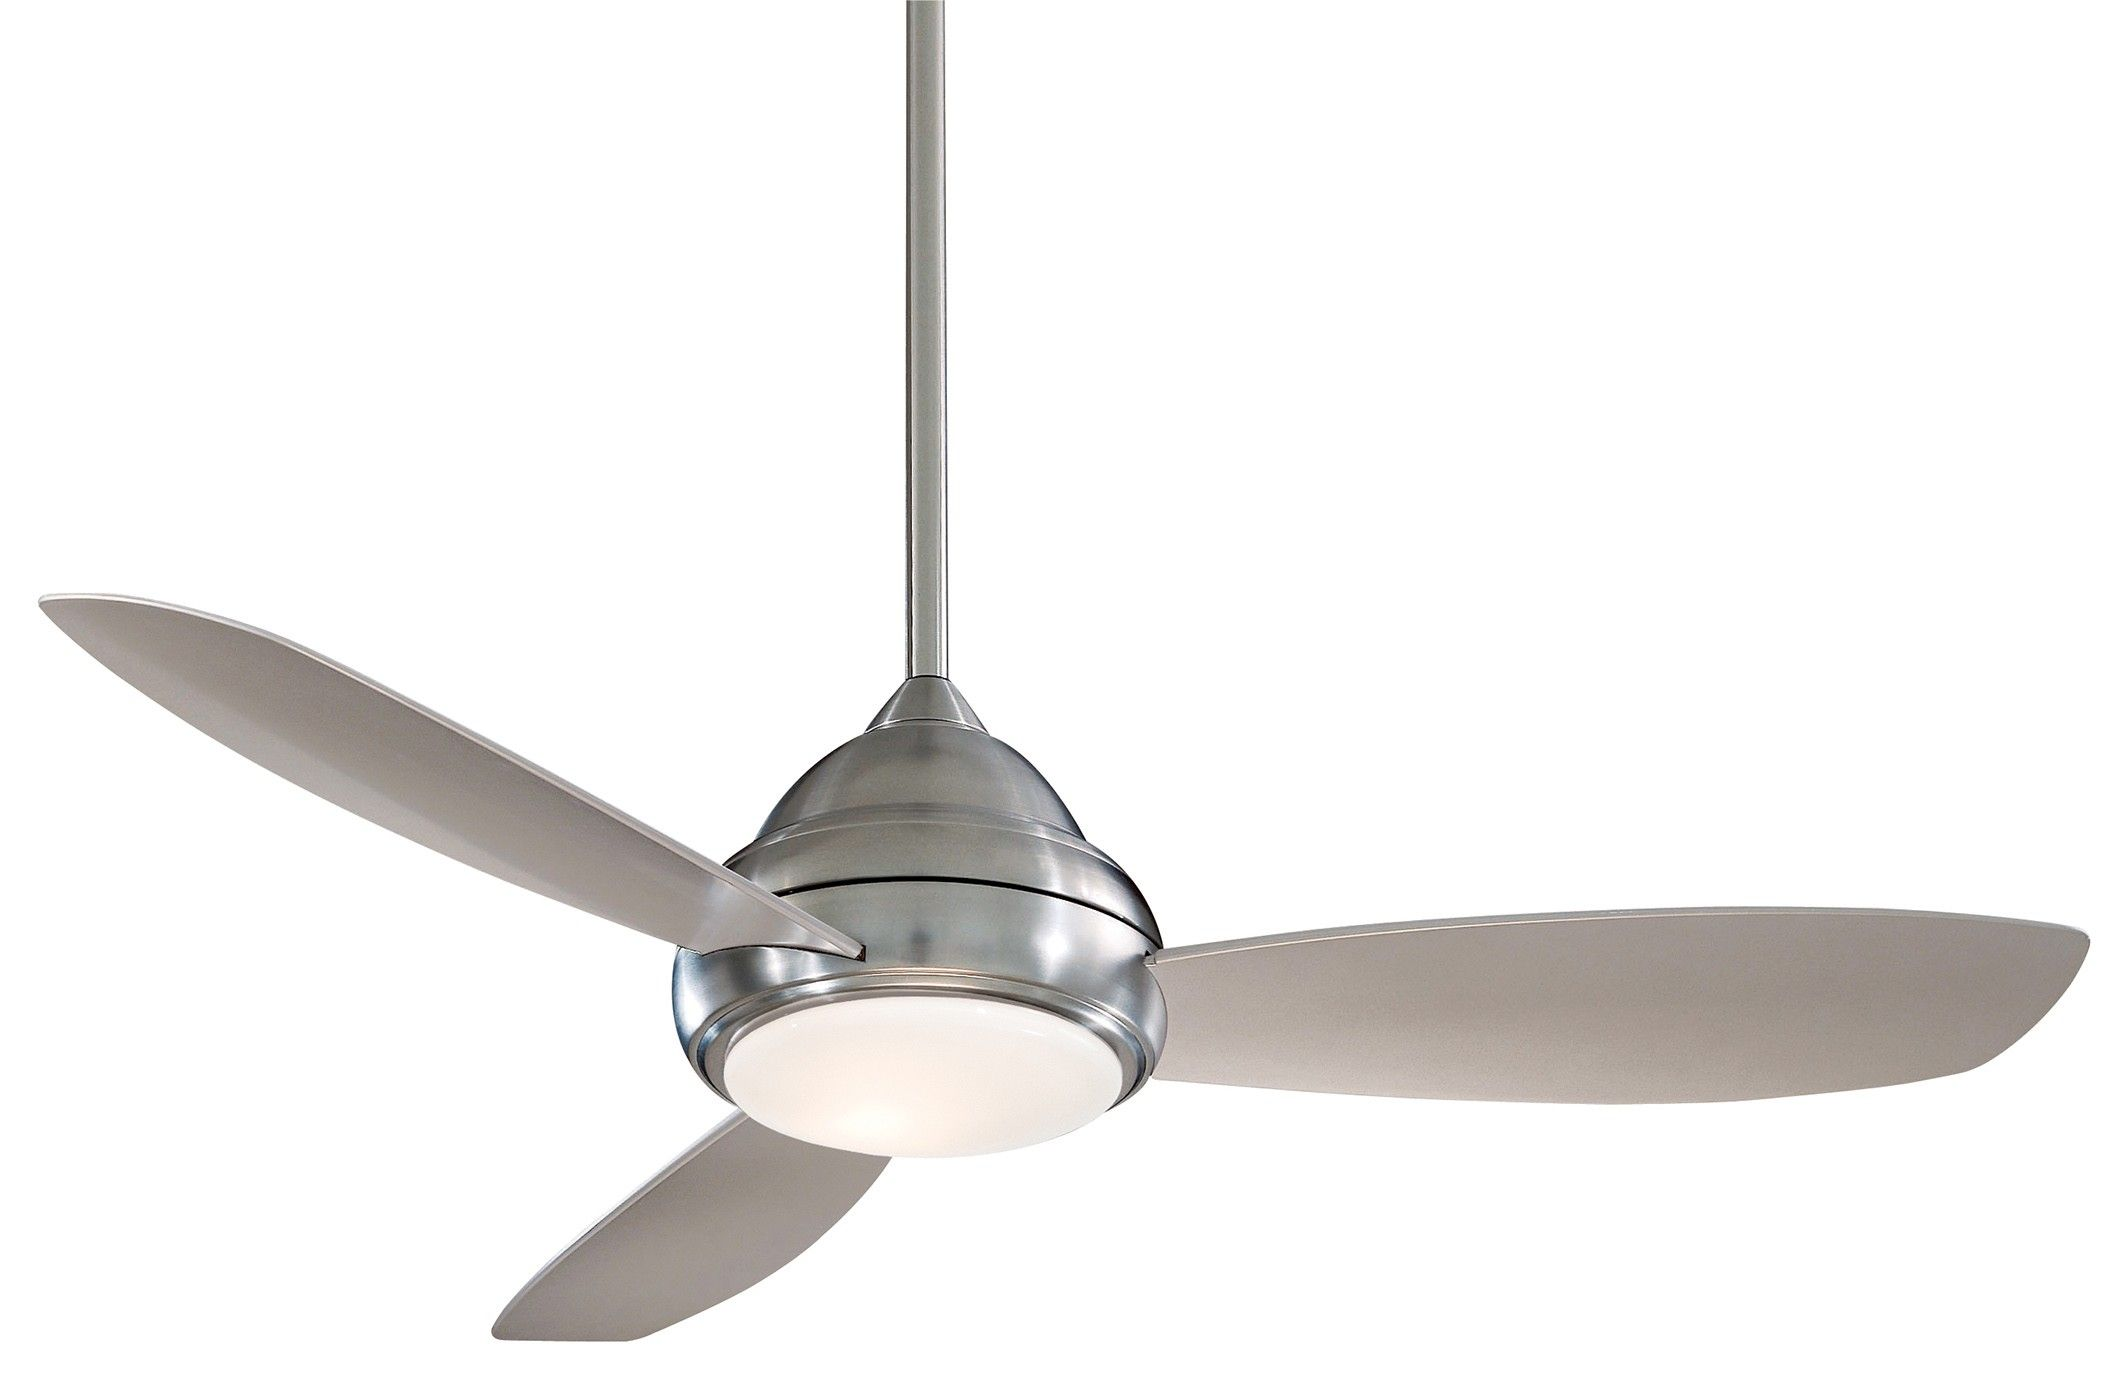 44 Ceiling Fan With Light and Remote Control